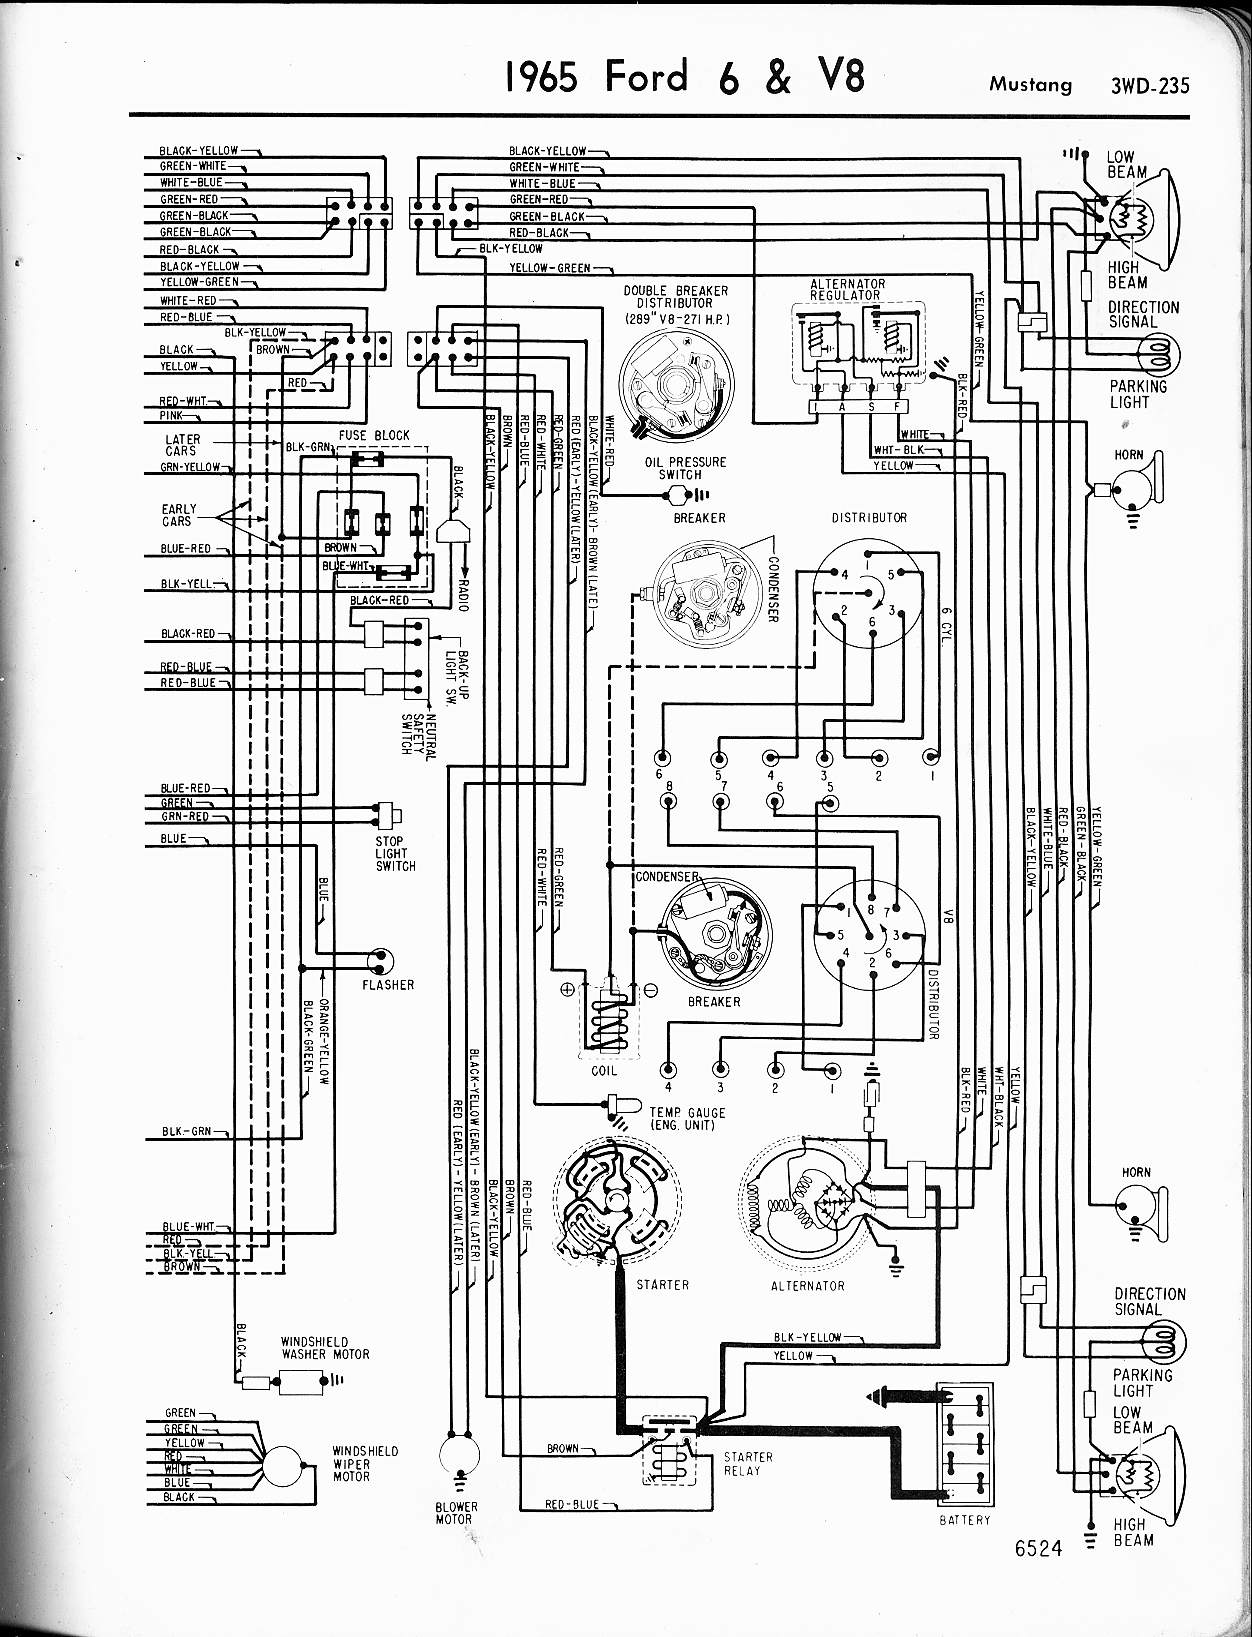 MWire5765 235 mustang wiring harness diagram 2005 2009 mustang wiring harness 1965 ford mustang wiring diagrams at nearapp.co